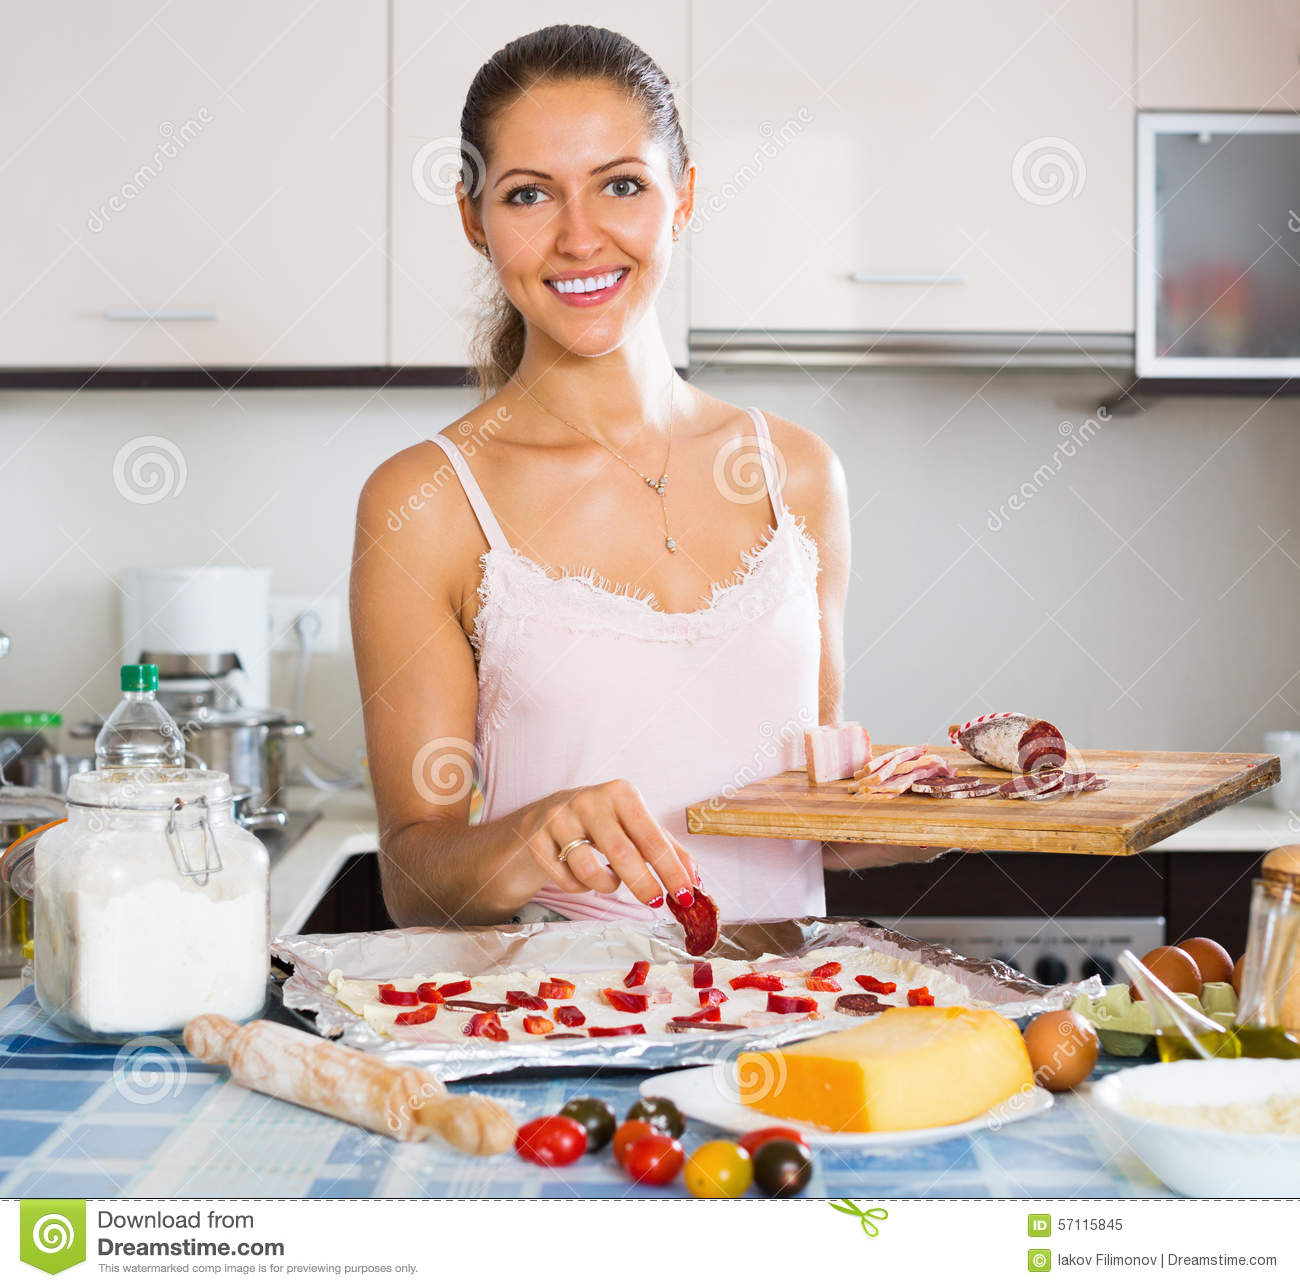 happy girl cooking pizza at home kitchen stock image - image: 57115845